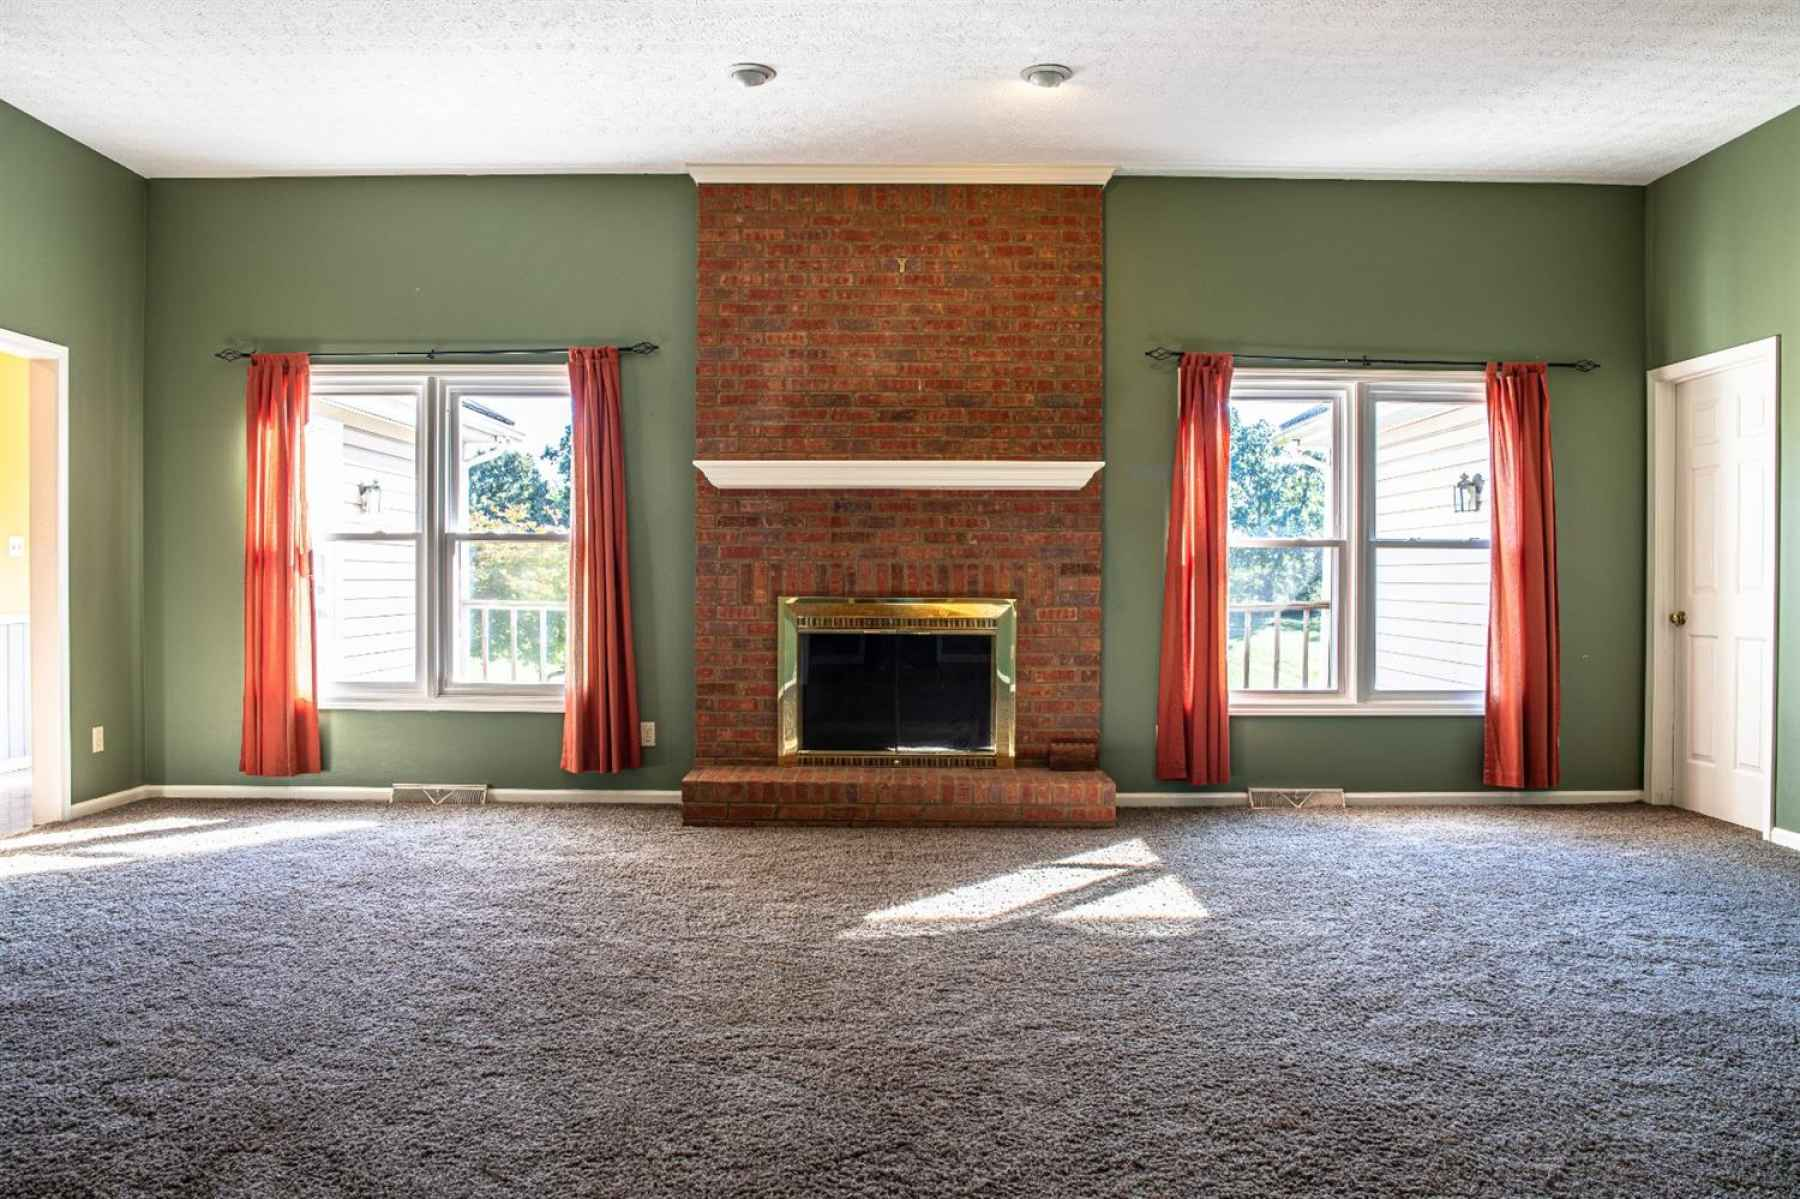 Natural Light & Fireplace Accent This Room